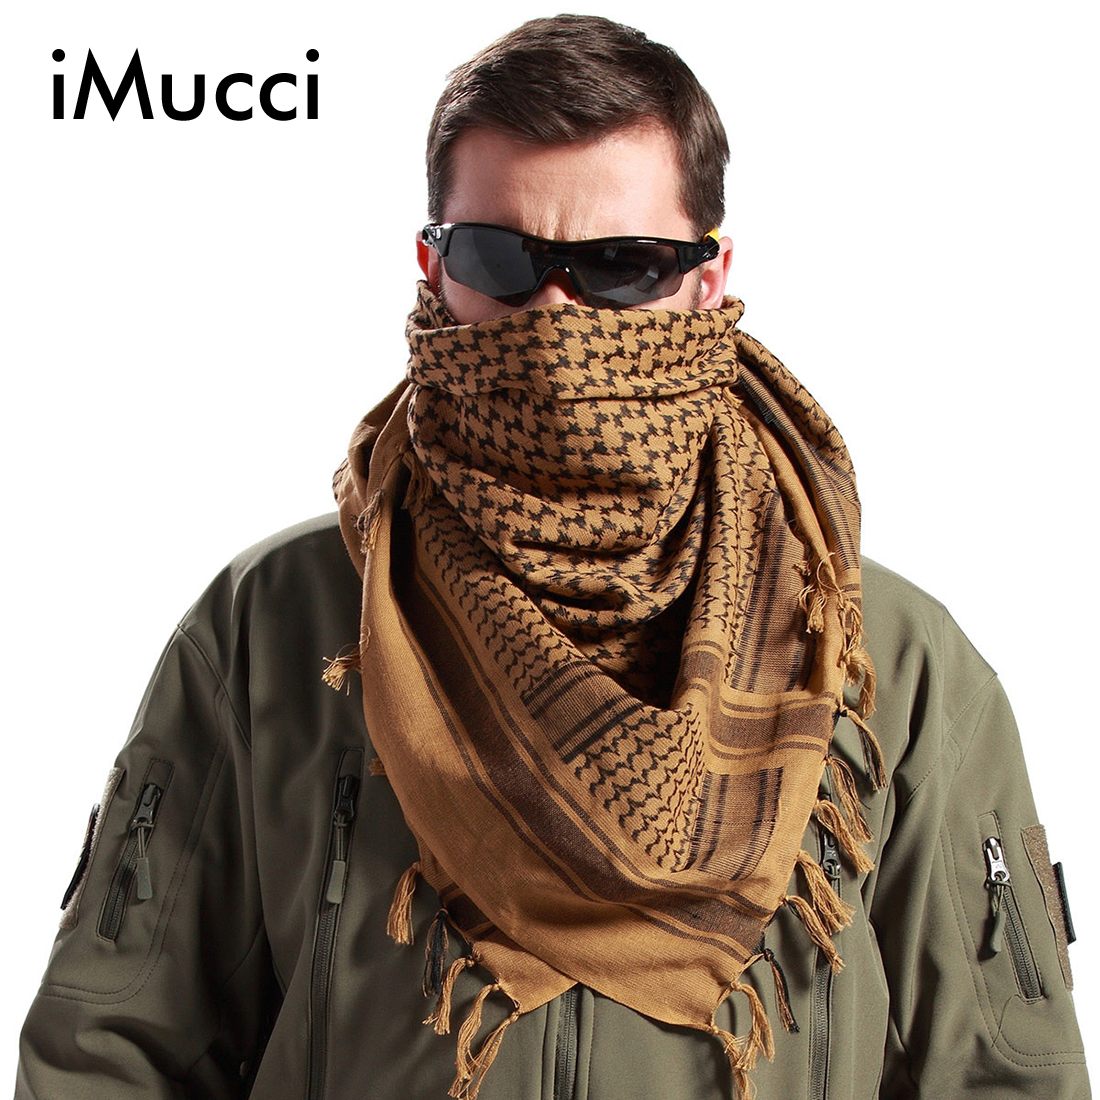 Winter Scarf Shawl Hijab Shemagh Gift Cotton Women Keffiyeh Muslim Military for Imucci